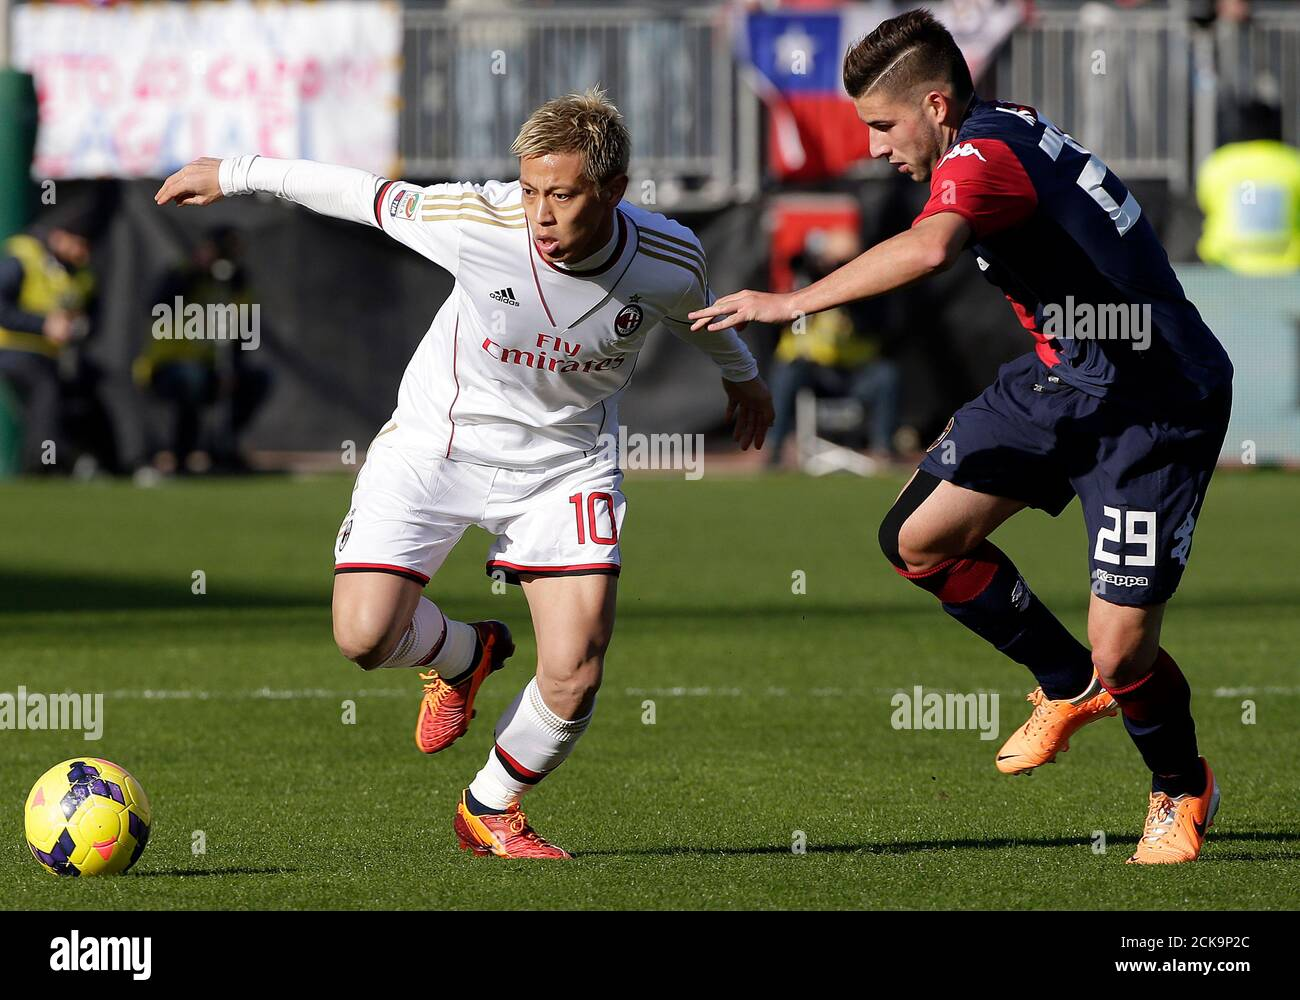 AC Milan's Keisuke Honda (L) challenges Nicola Murru of Cagliari during their Italian Serie A soccer match at the Sant'Elia stadium in Cagliari January 26, 2014.  REUTERS/Max Rossi (ITALY - Tags: SPORT SOCCER) Stock Photo